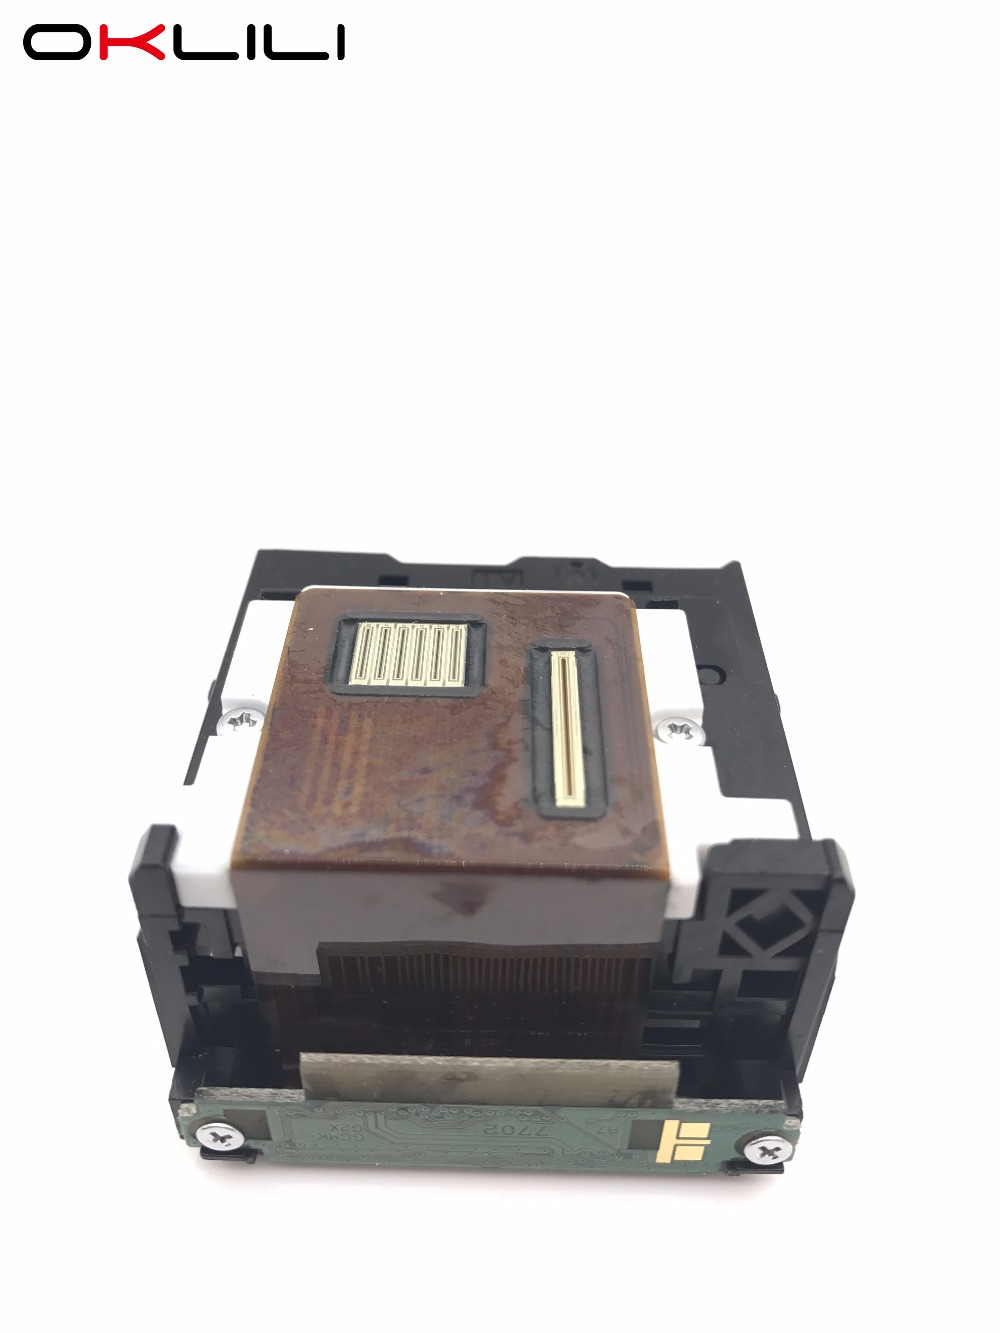 OKLILI ORIGINAL QY6-0068 QY6-0068-000 Printhead Print Head Printer Head for Canon PIXMA iP100 oklili original qy6 0050 qy6 0050 000 printhead print head printer head for canon pixus 900pd i900d i950d ip6100d ip6000d